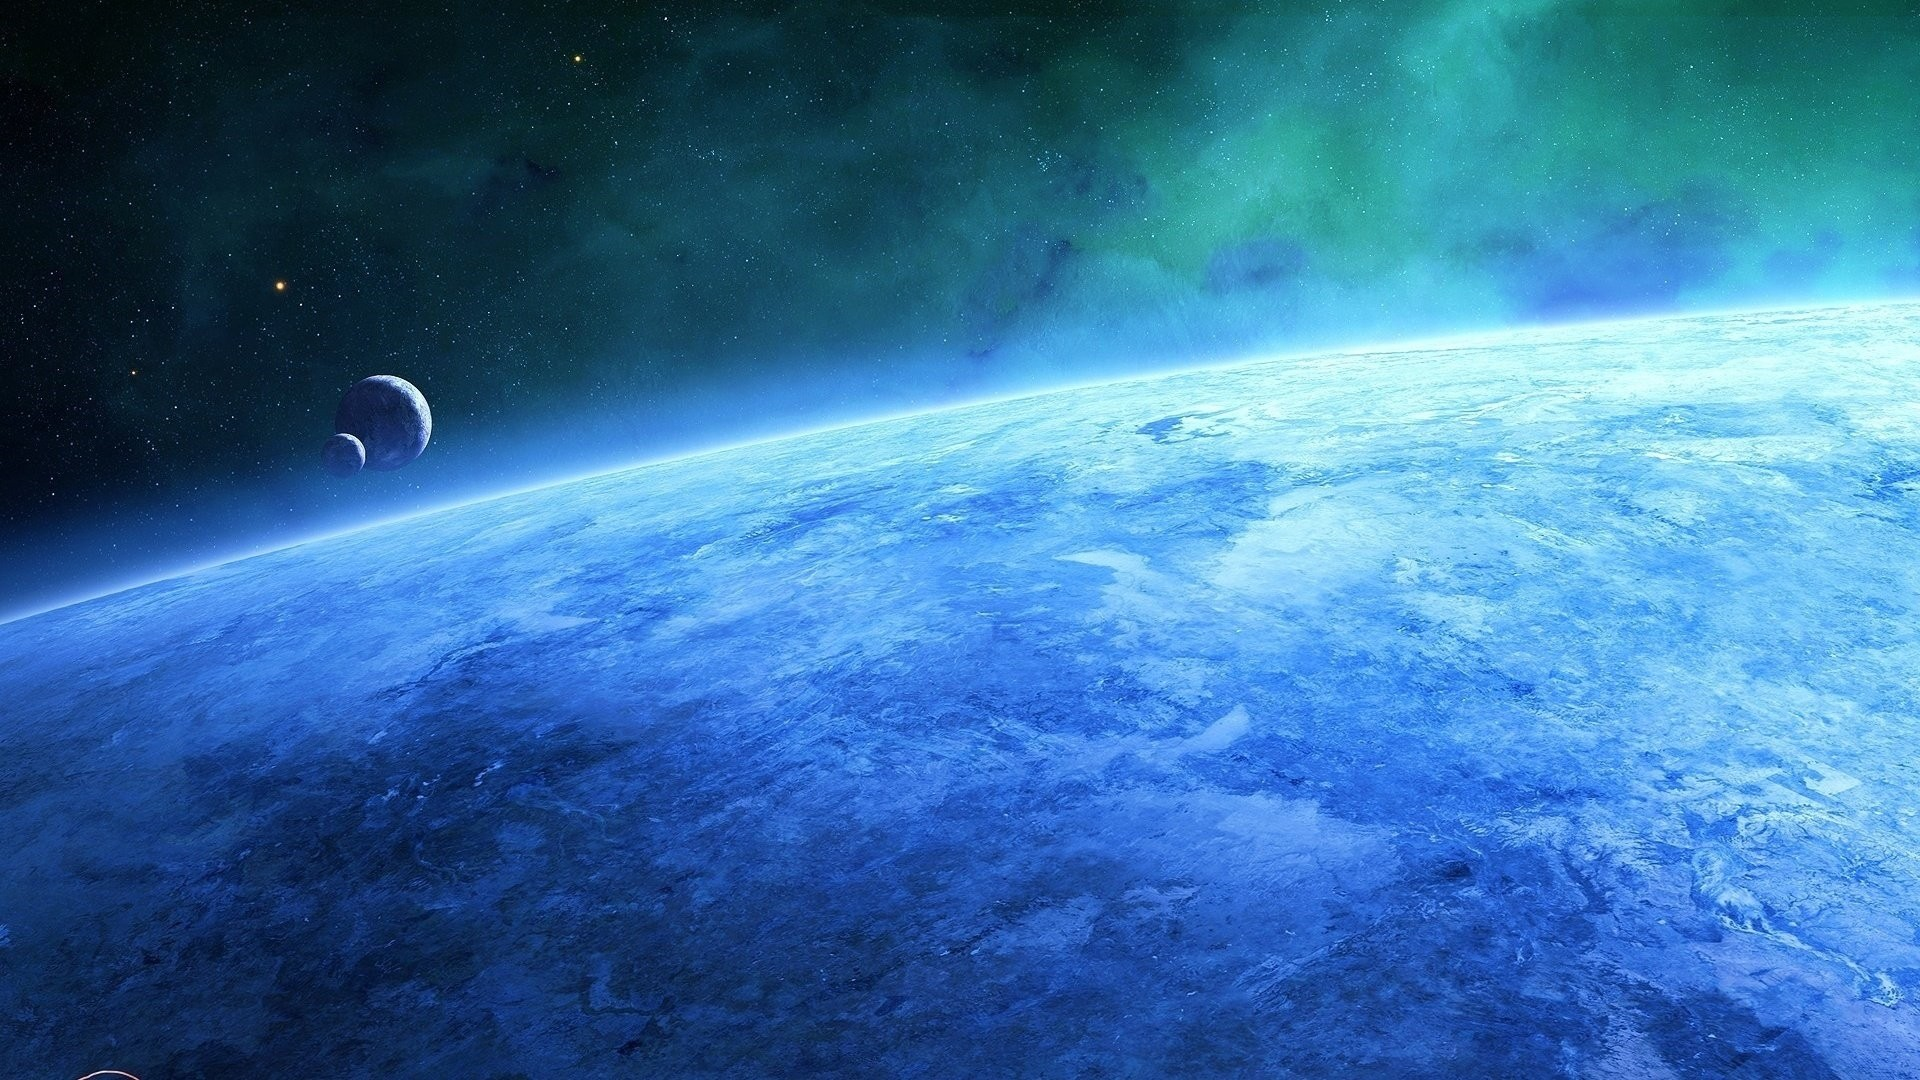 Outer Space PC Wallpaper HD